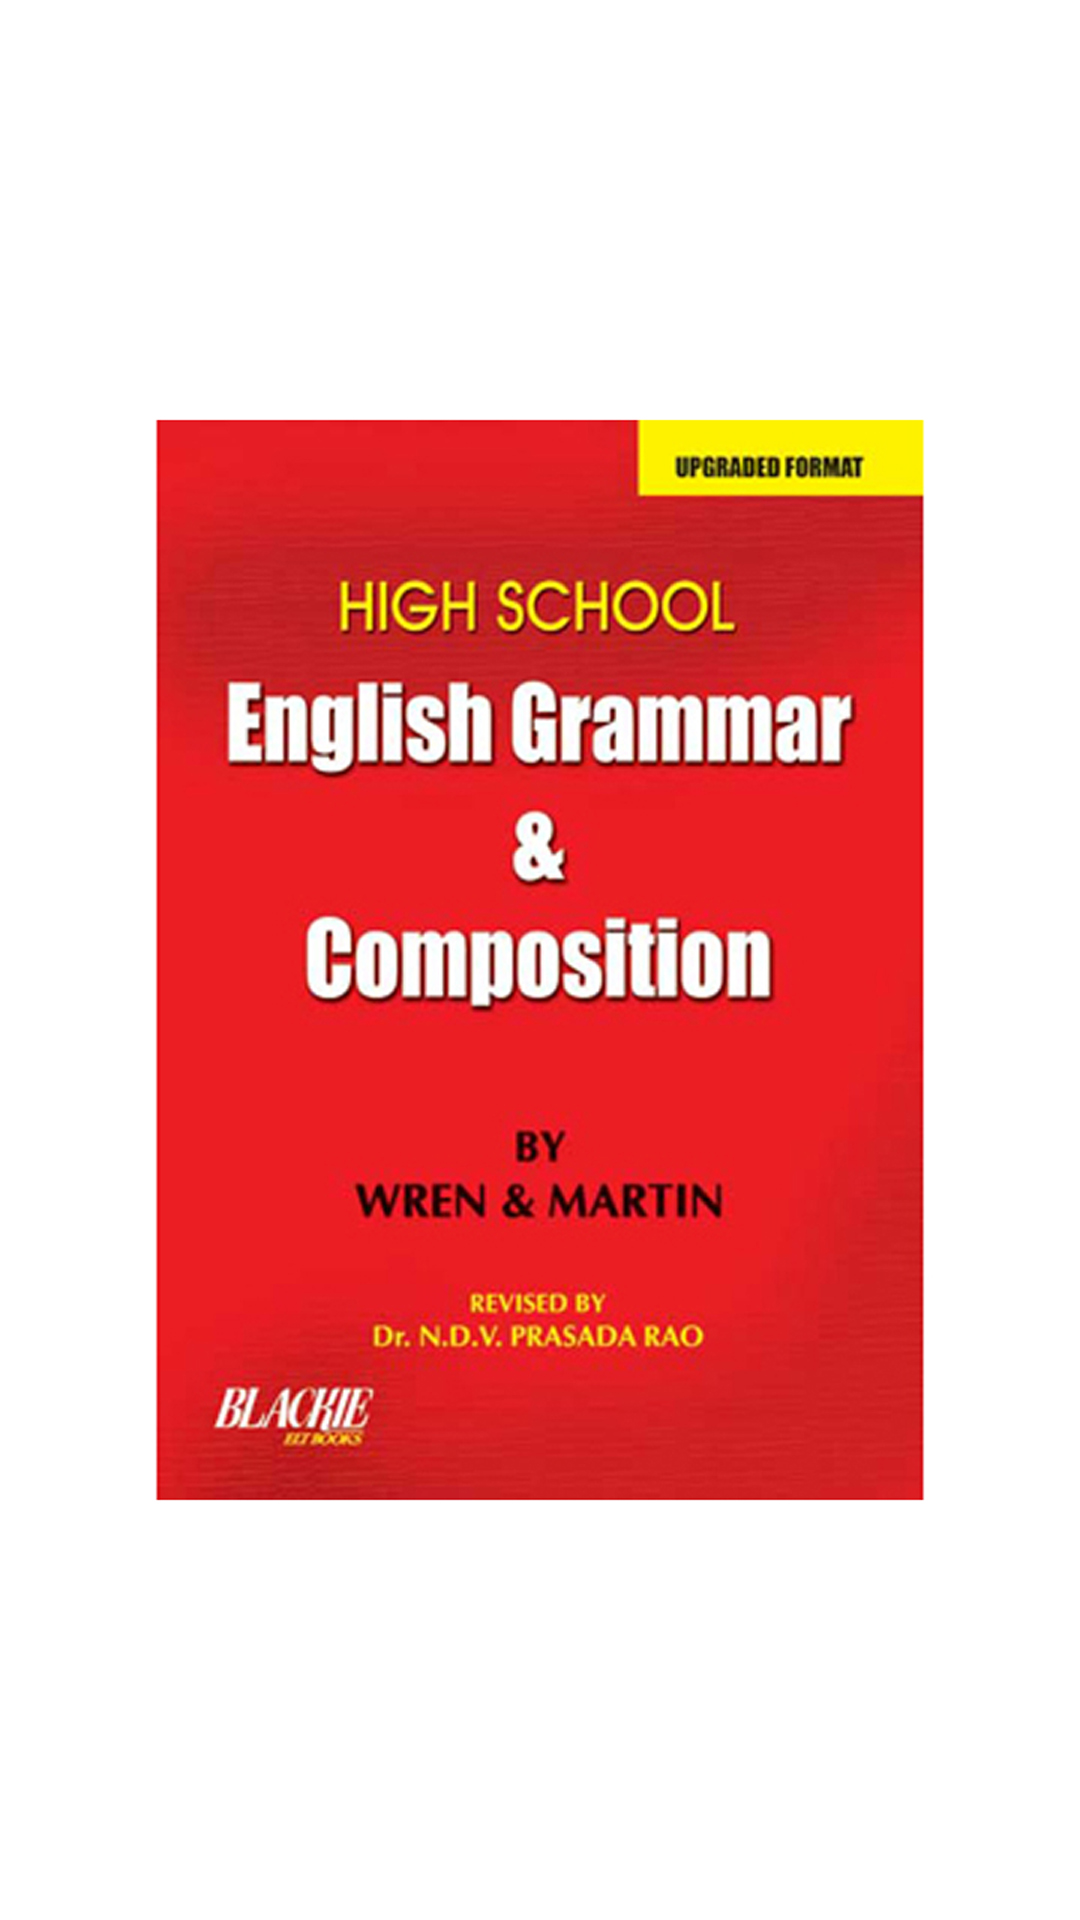 English Grammar Test For High School Students